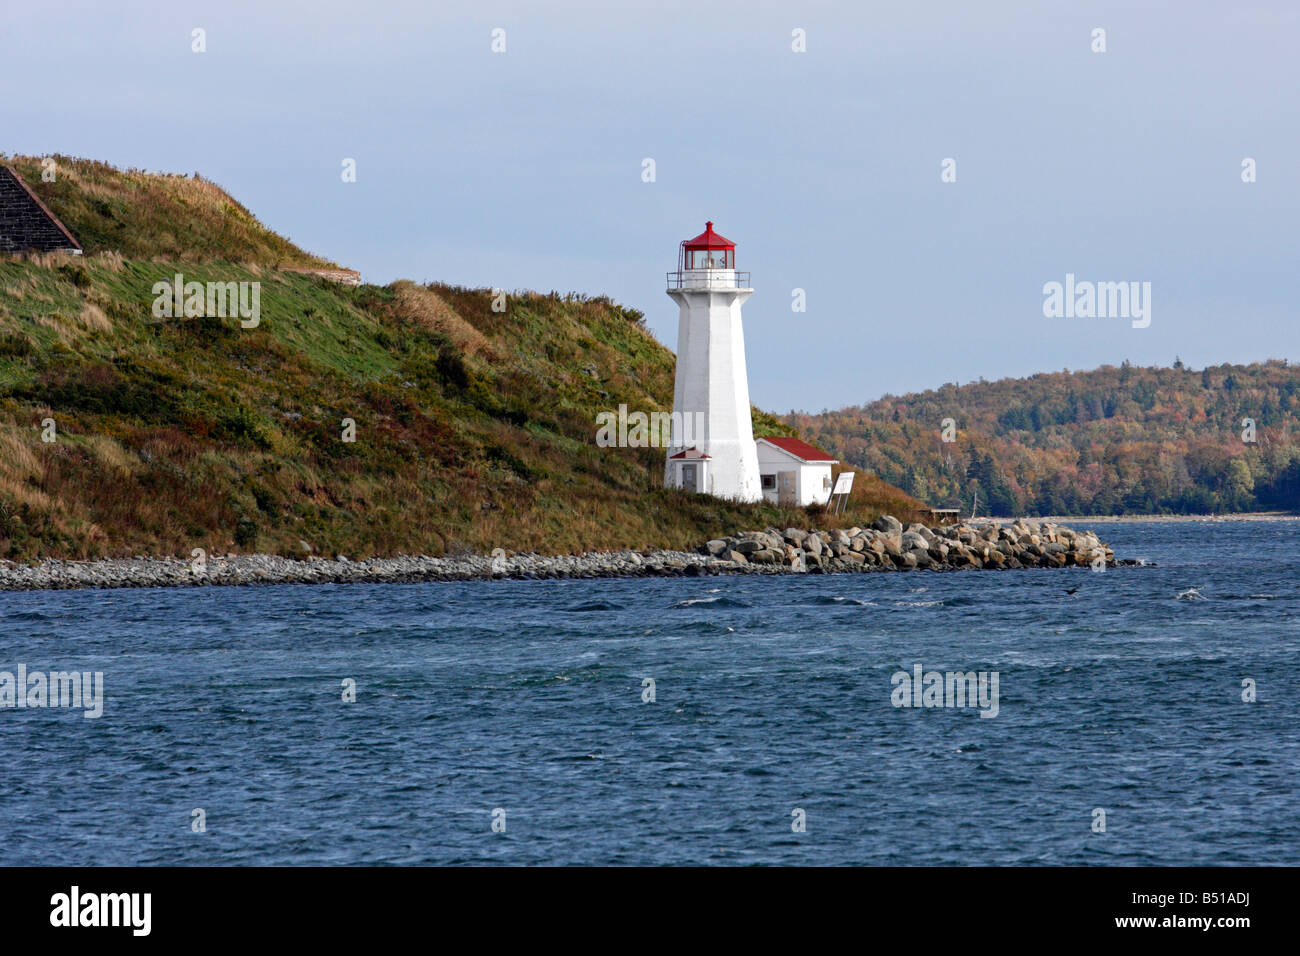 Georges Island Lighthouse on Georges Island in Halifax, Nova Scotia BHZ - Stock Image